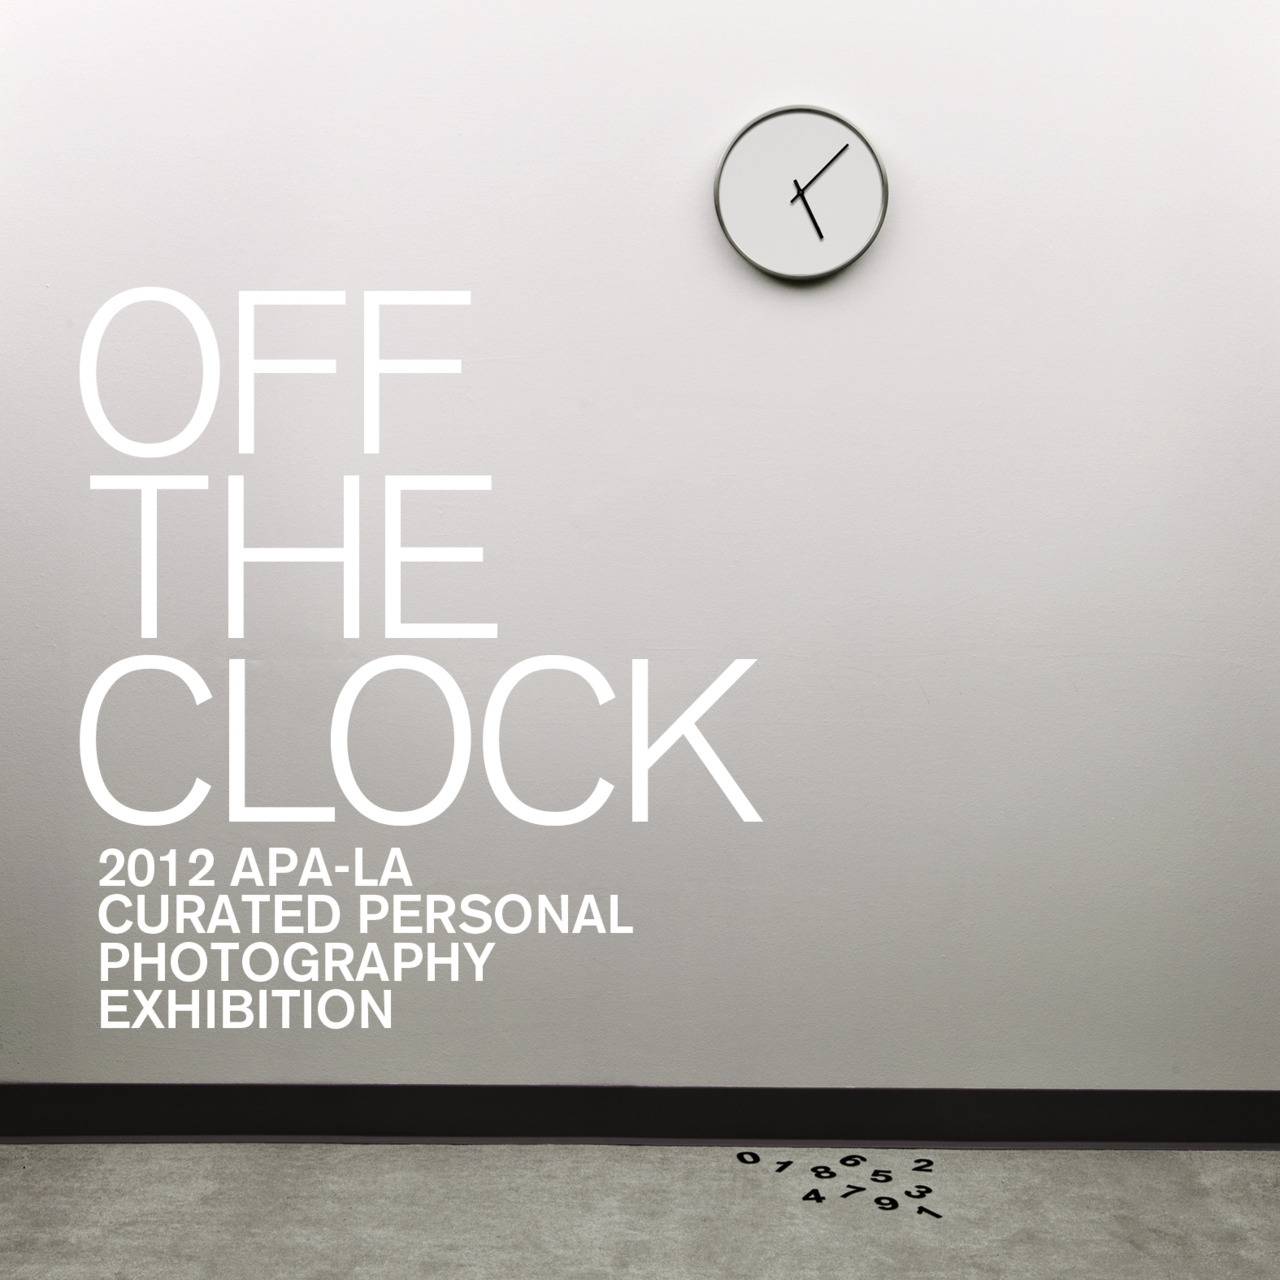 Off The Clock 2012 APA-LA Curated Photography Exhibition. This photograph from my Faces of CF project has been selected for Off The Clock Photography Exhibition. The opening reception will be Saturday June 16th from 7-10 pm Helms Bakery BuildingWashington Corridor8723 Washington BlvdCulver City 90232 Go here to get more details  http://www.apa-la.org/Upcoming-APA-LA-Events-Photography-Workshops/off-the-clock-la-reception.html